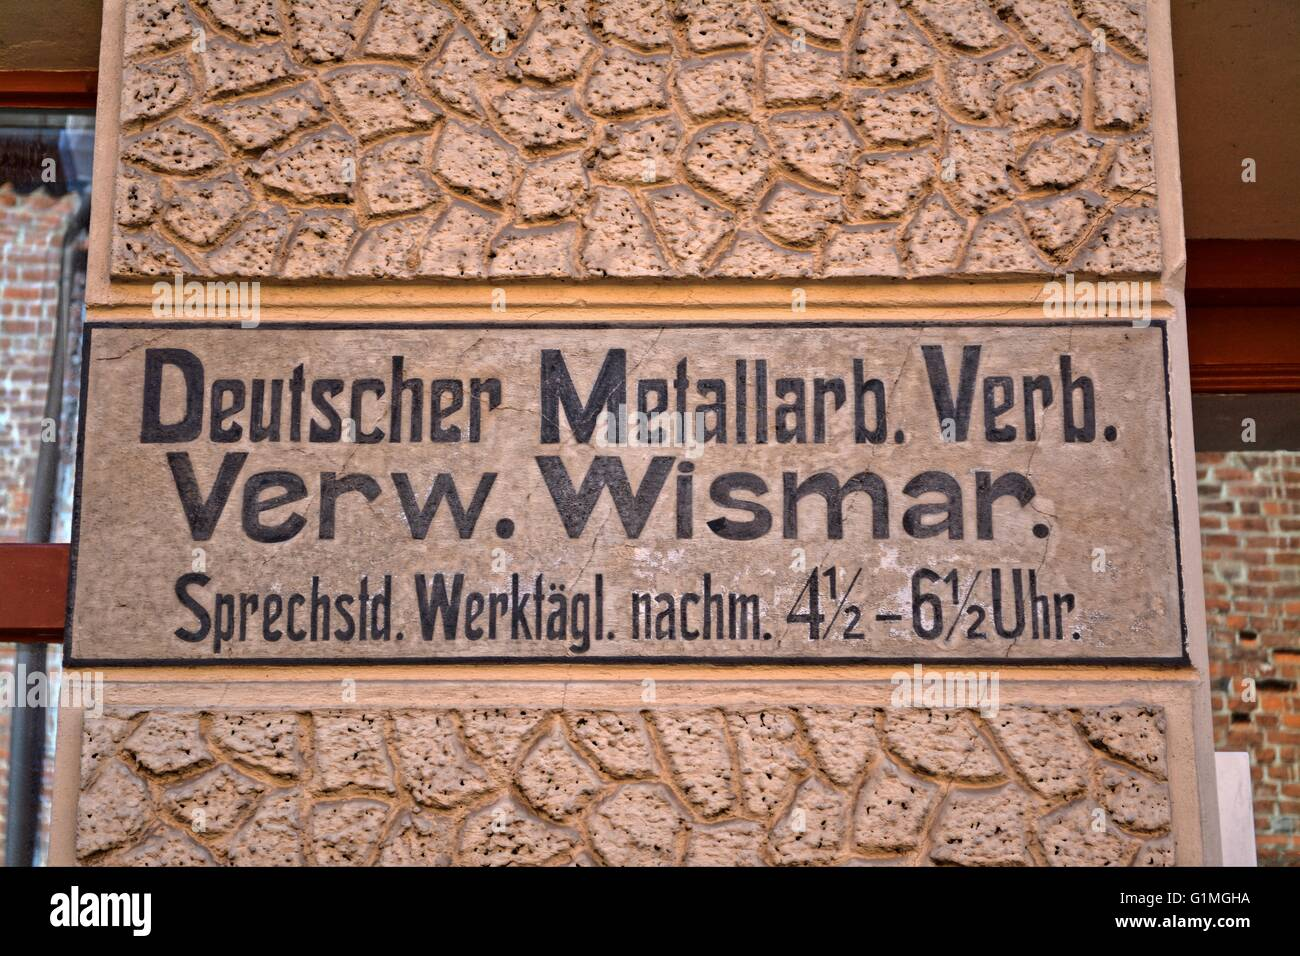 1900`s old wall advertisement, on a house wall in Wismar, Germany. German Metal Workers Union, head office Wismar. - Stock Image